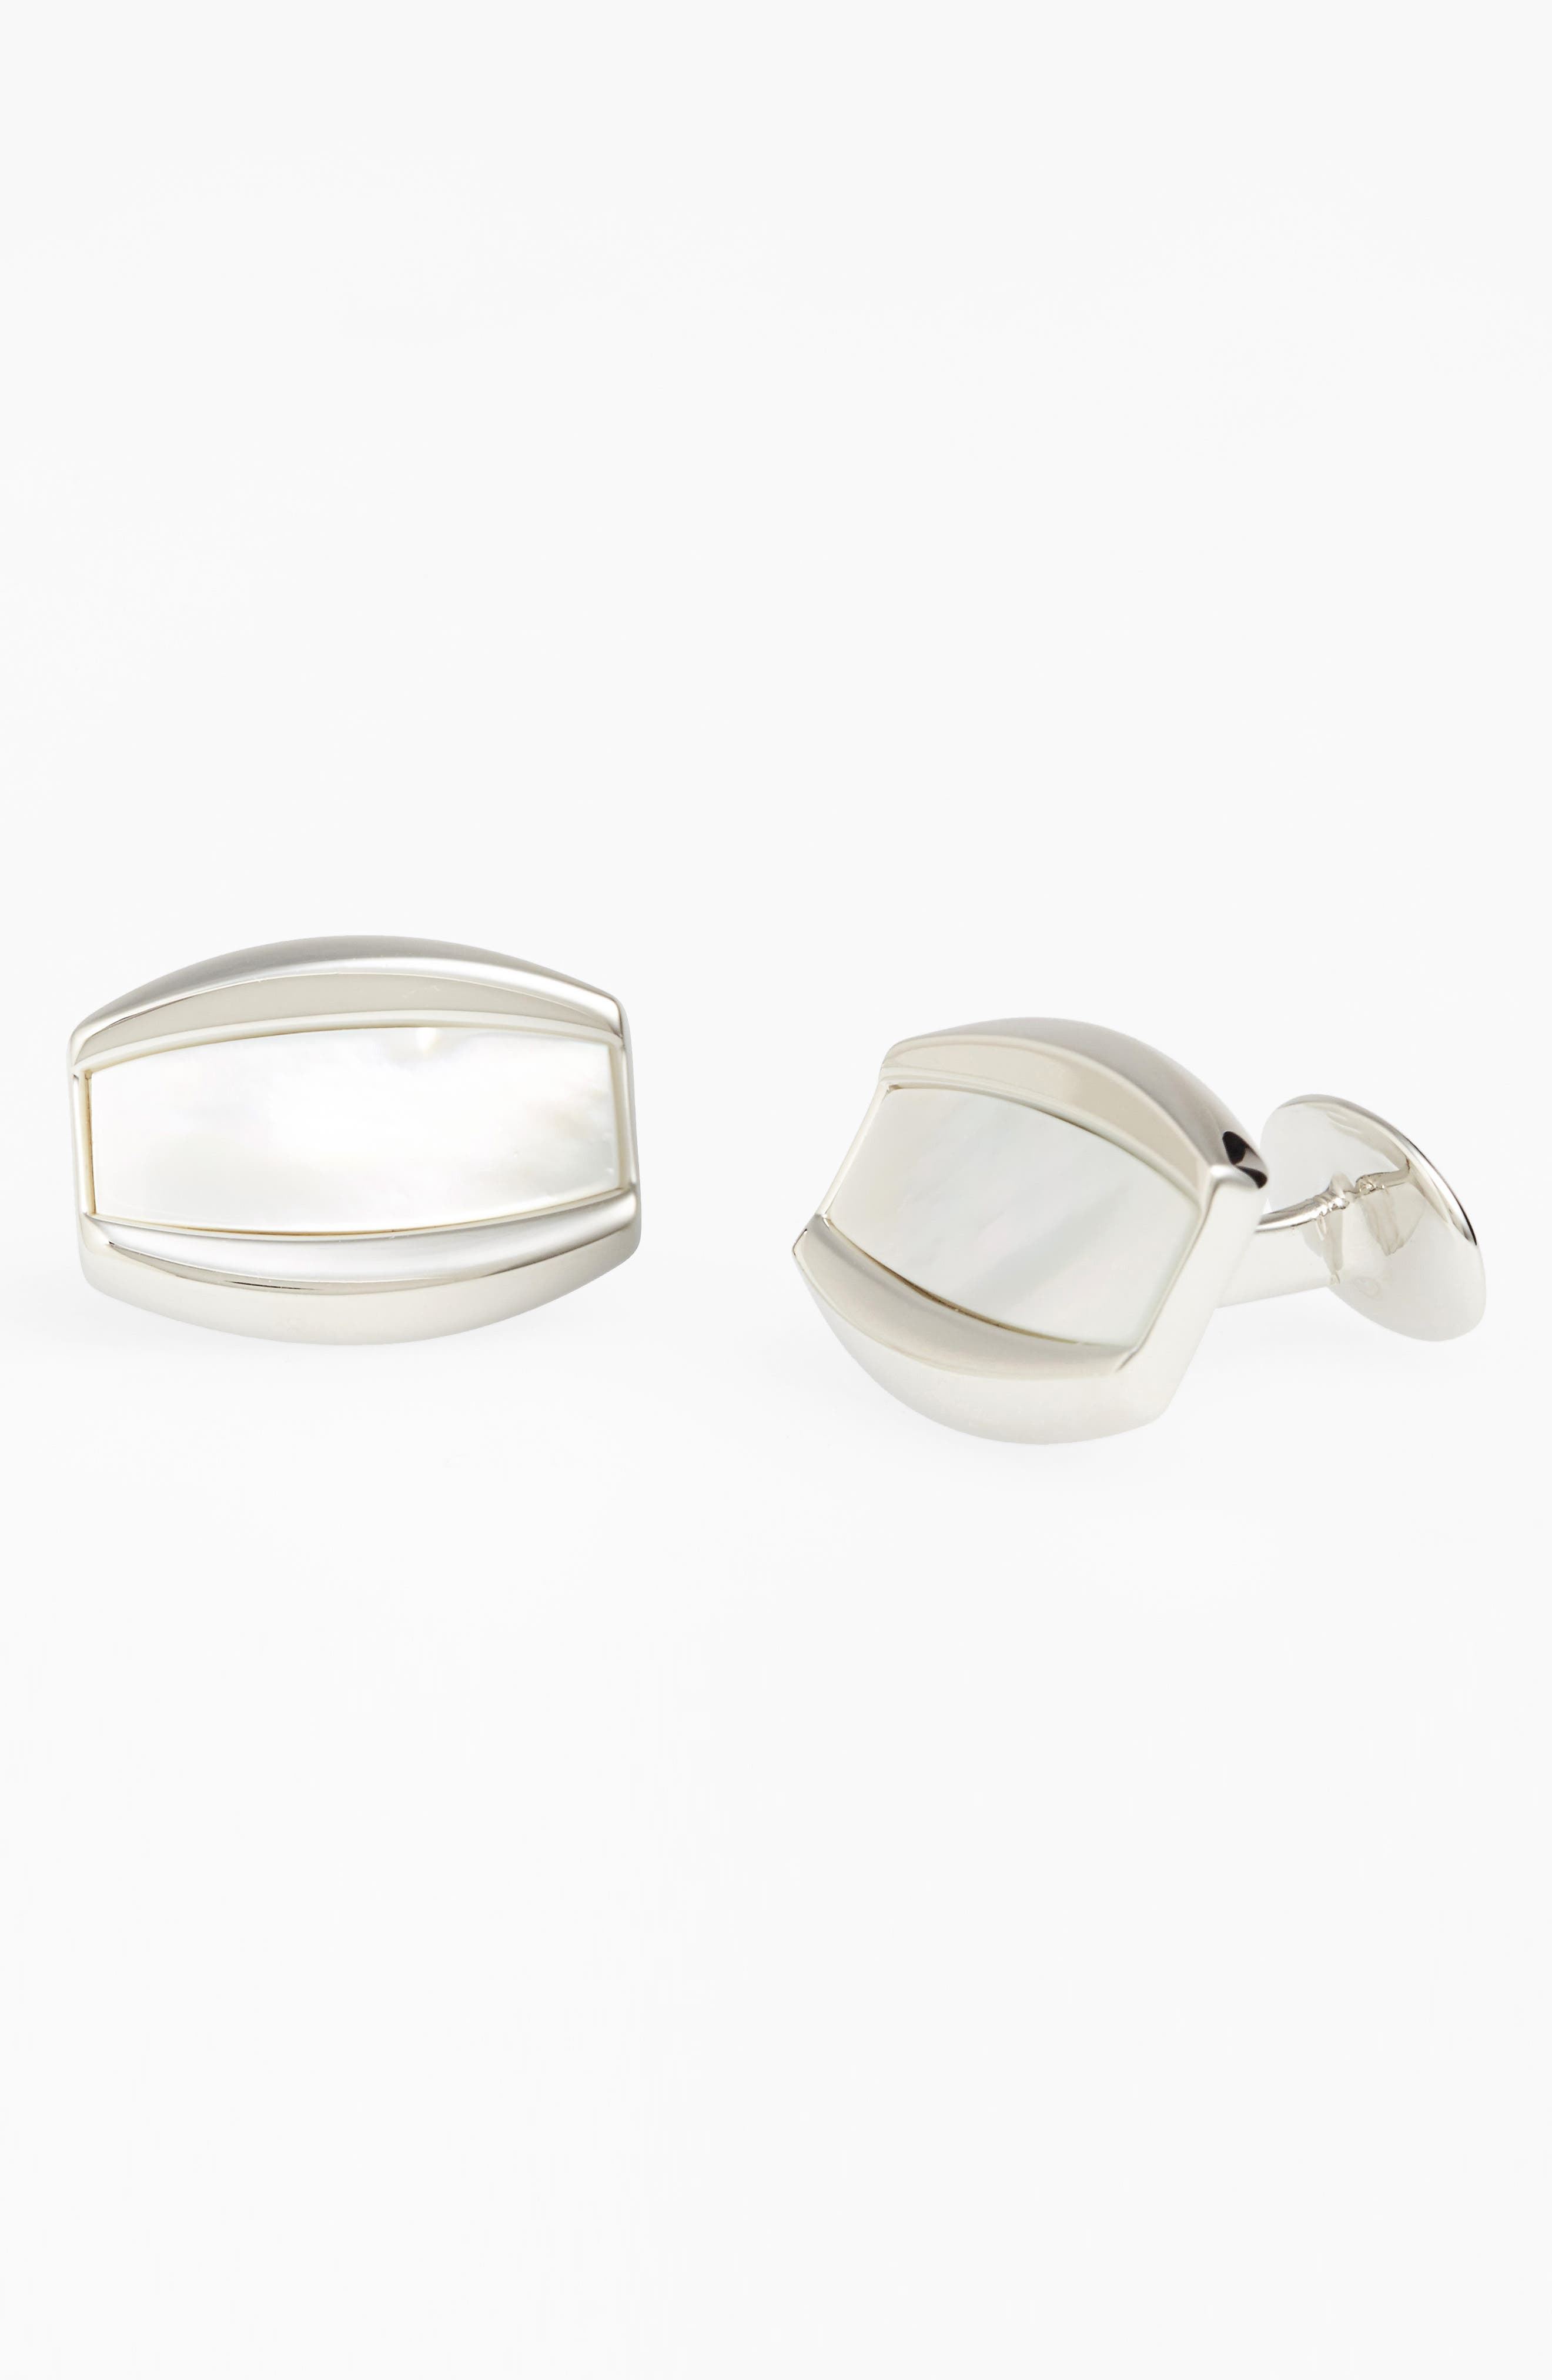 Mother of Pearl Cuff Links,                             Alternate thumbnail 2, color,                             040